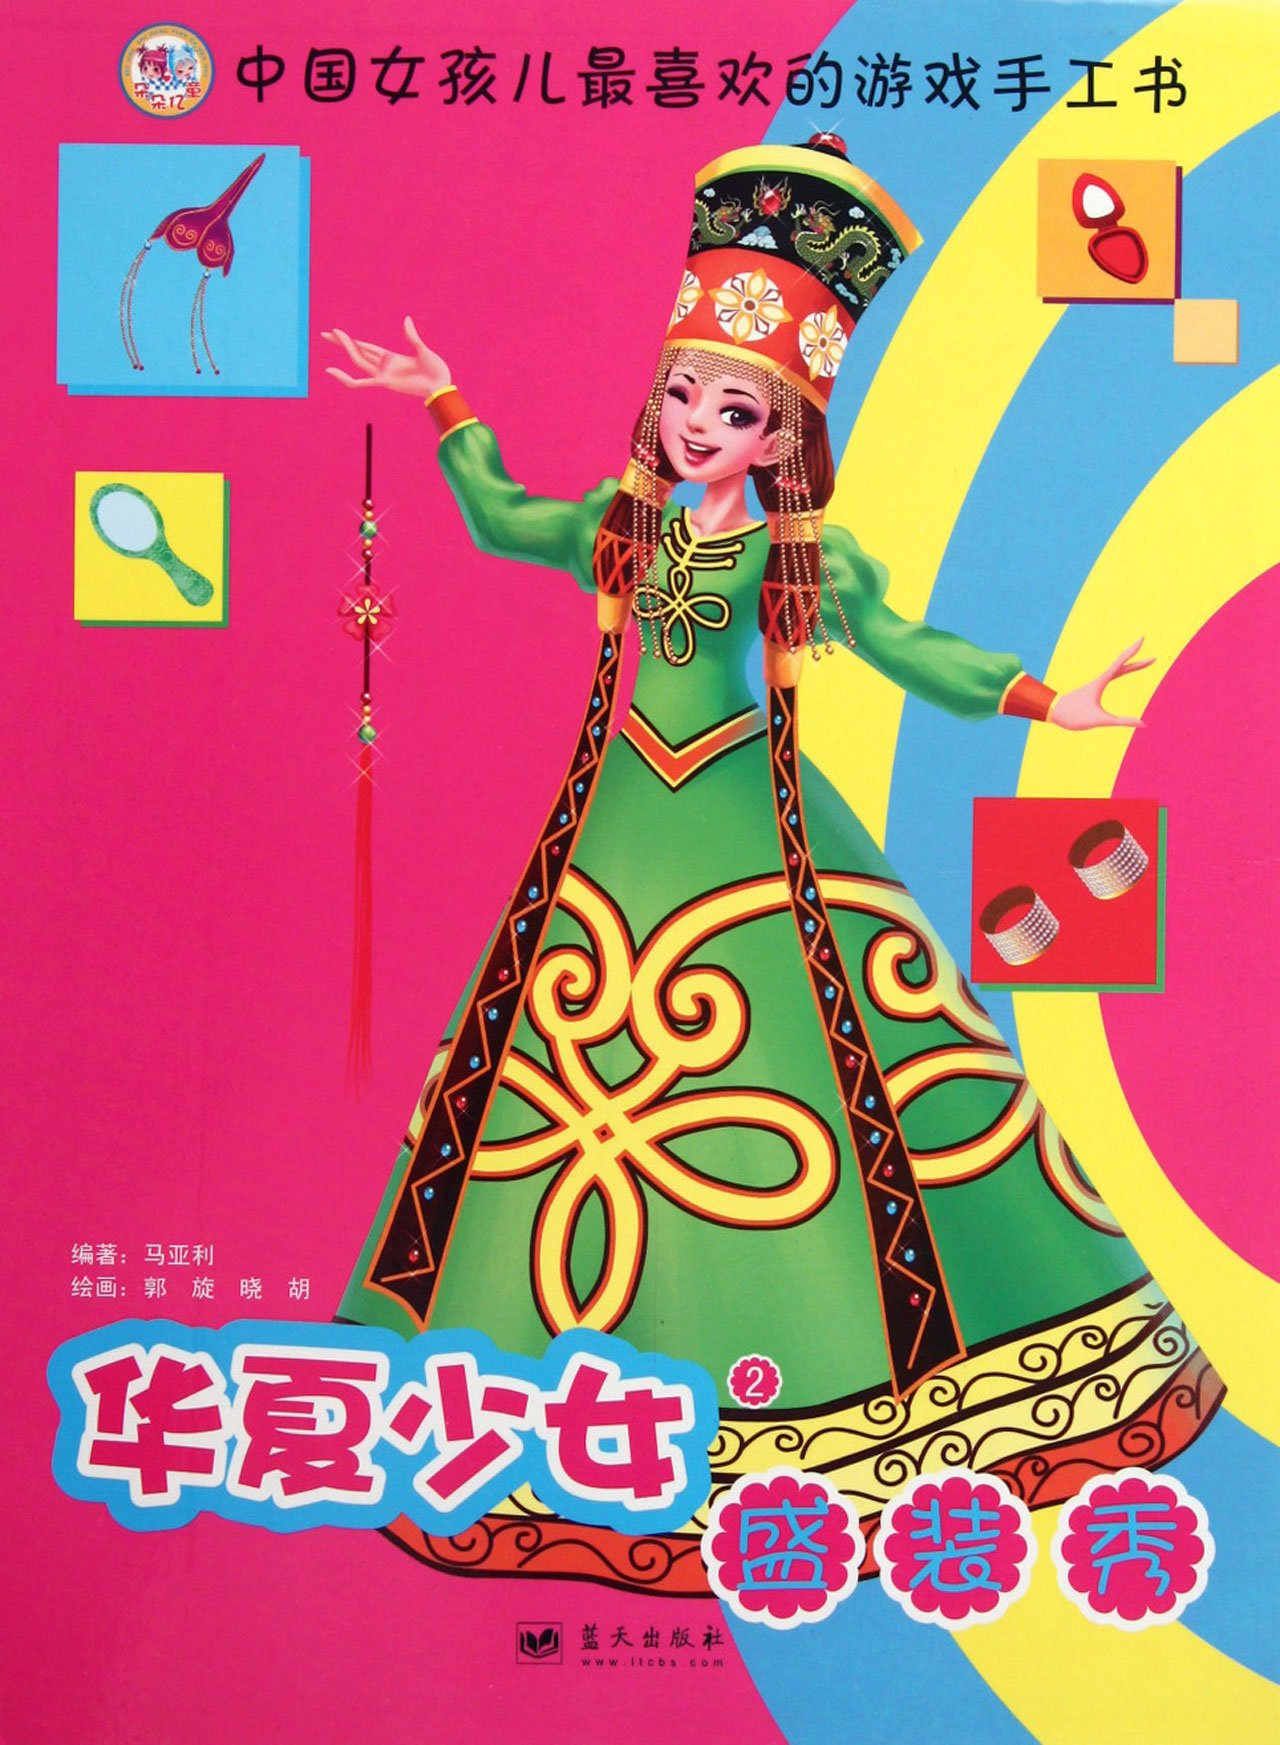 Chinese Girls Fashion Show - Chinese Girls Favorite Manual Game Book - 2 (Chinese Edition) ebook